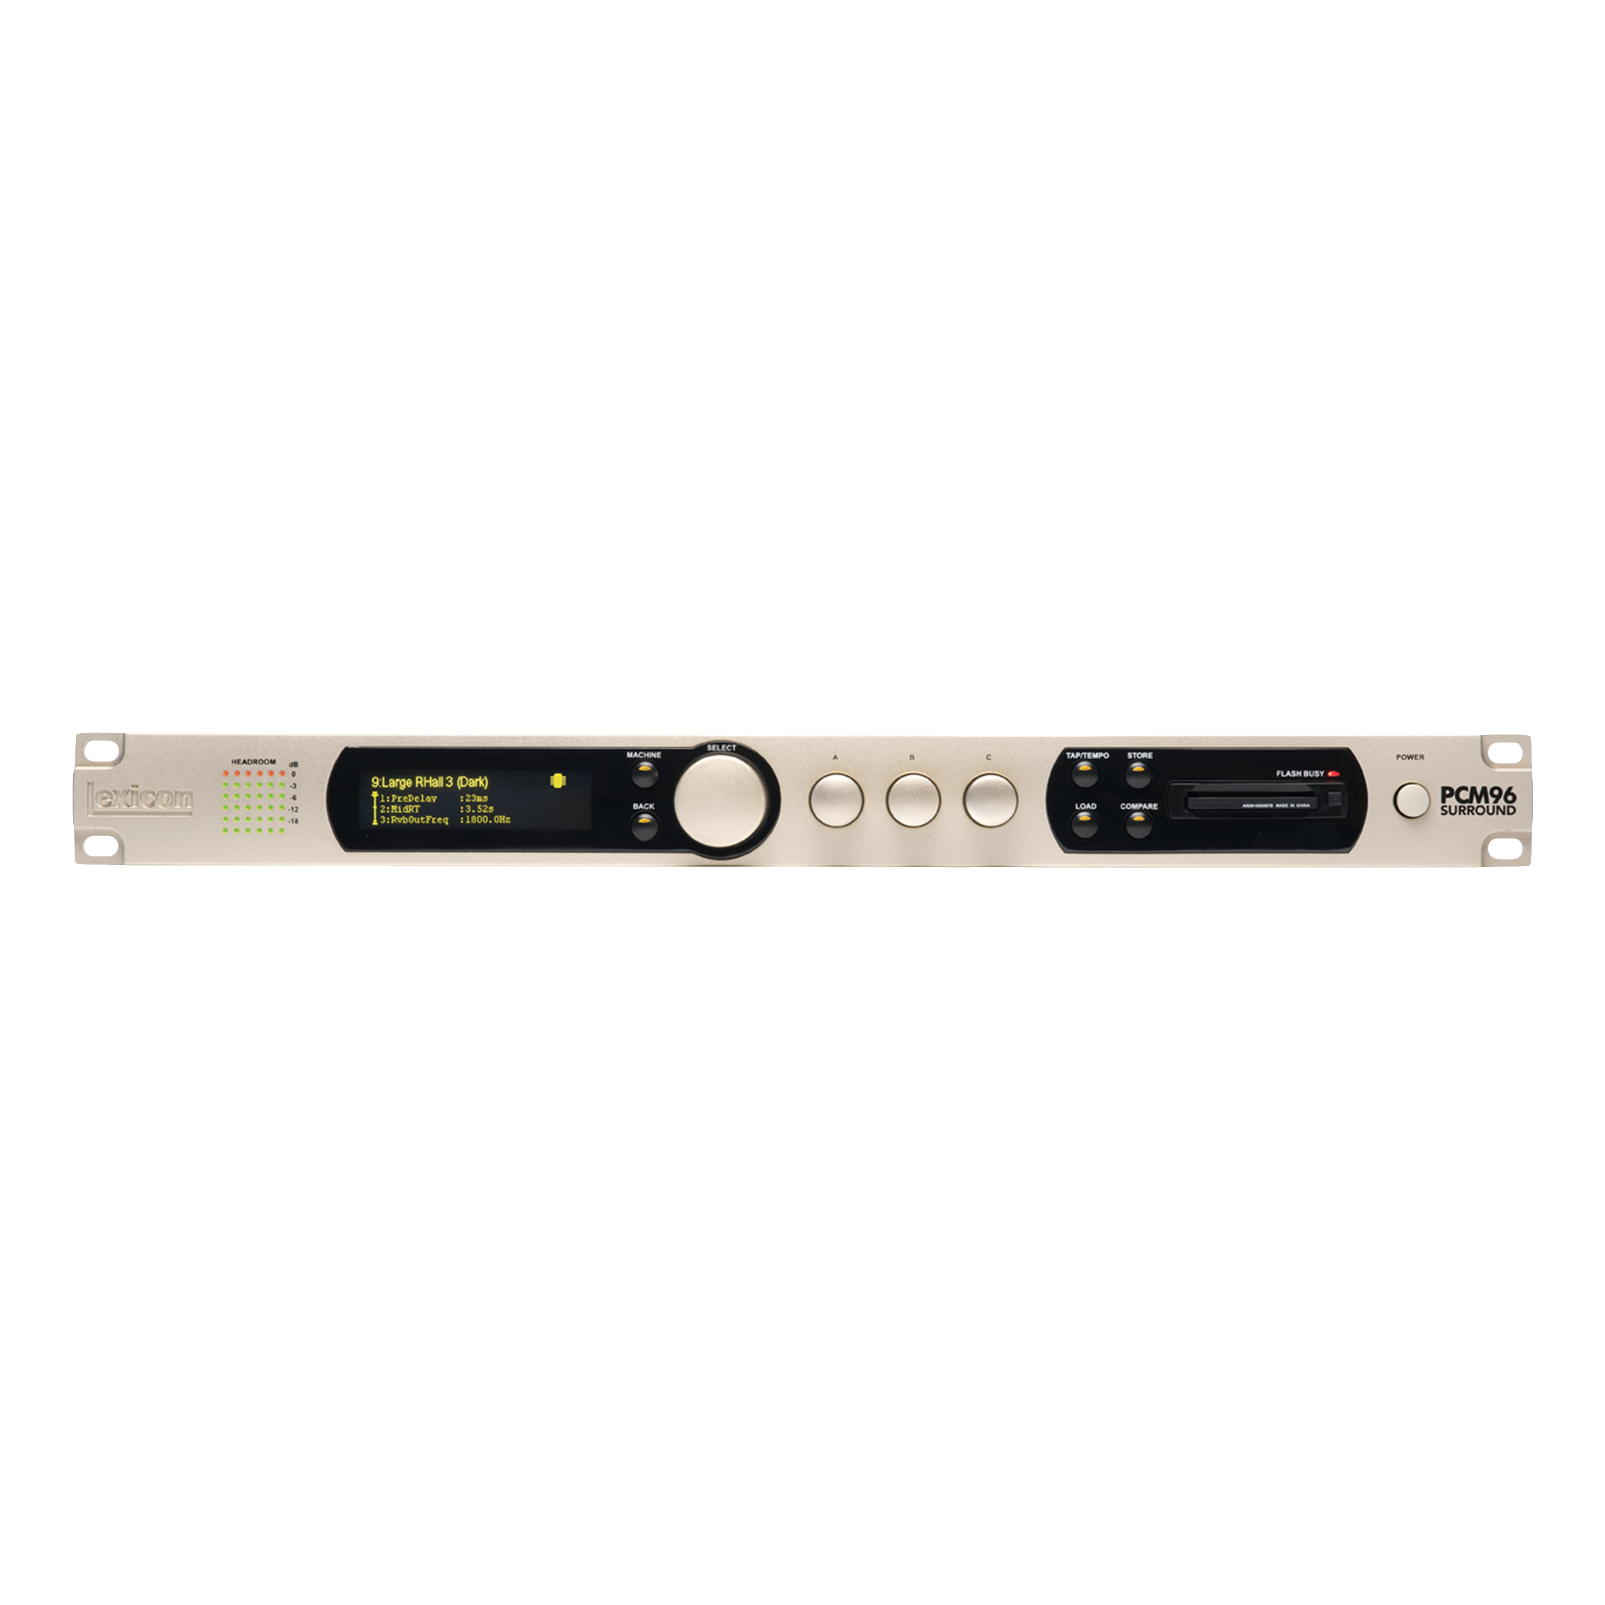 PCM96 Surround (digital) - Nickel - Parallel Stereo and Surround Reverb/Effects Processor w/ Digital I/O - Detailshot 1